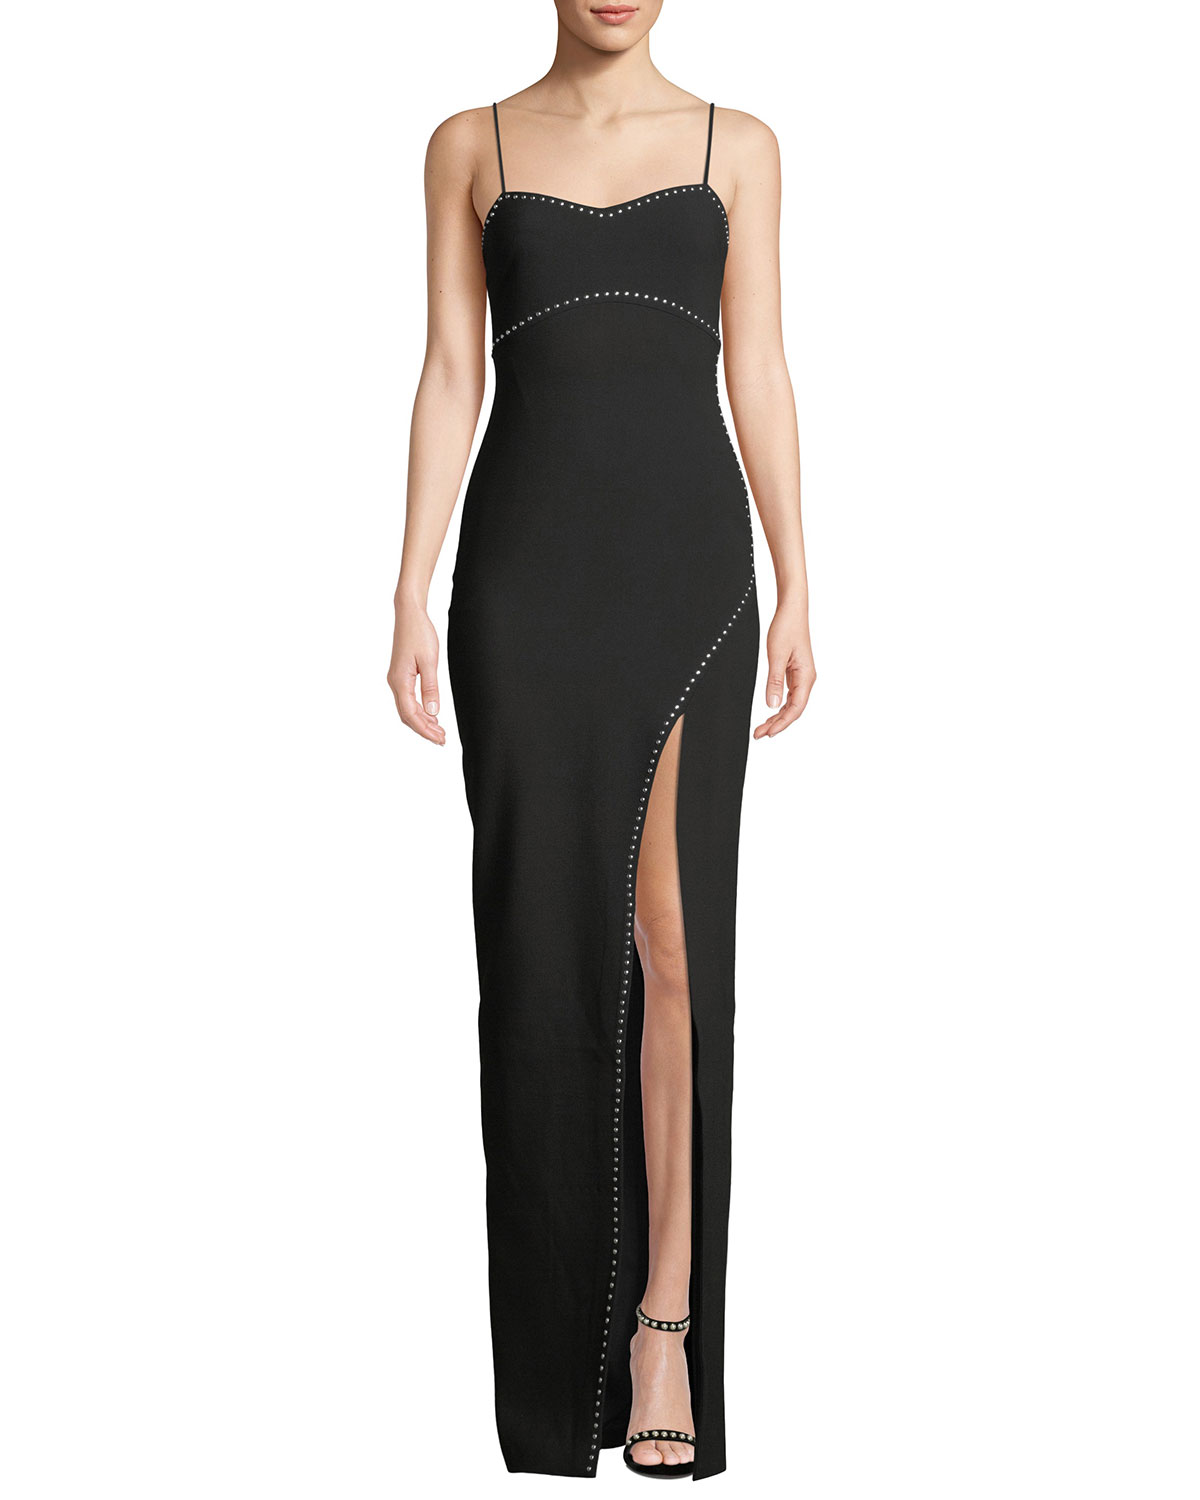 Likely Charlene Studded Bodycon Gown | Neiman Marcus